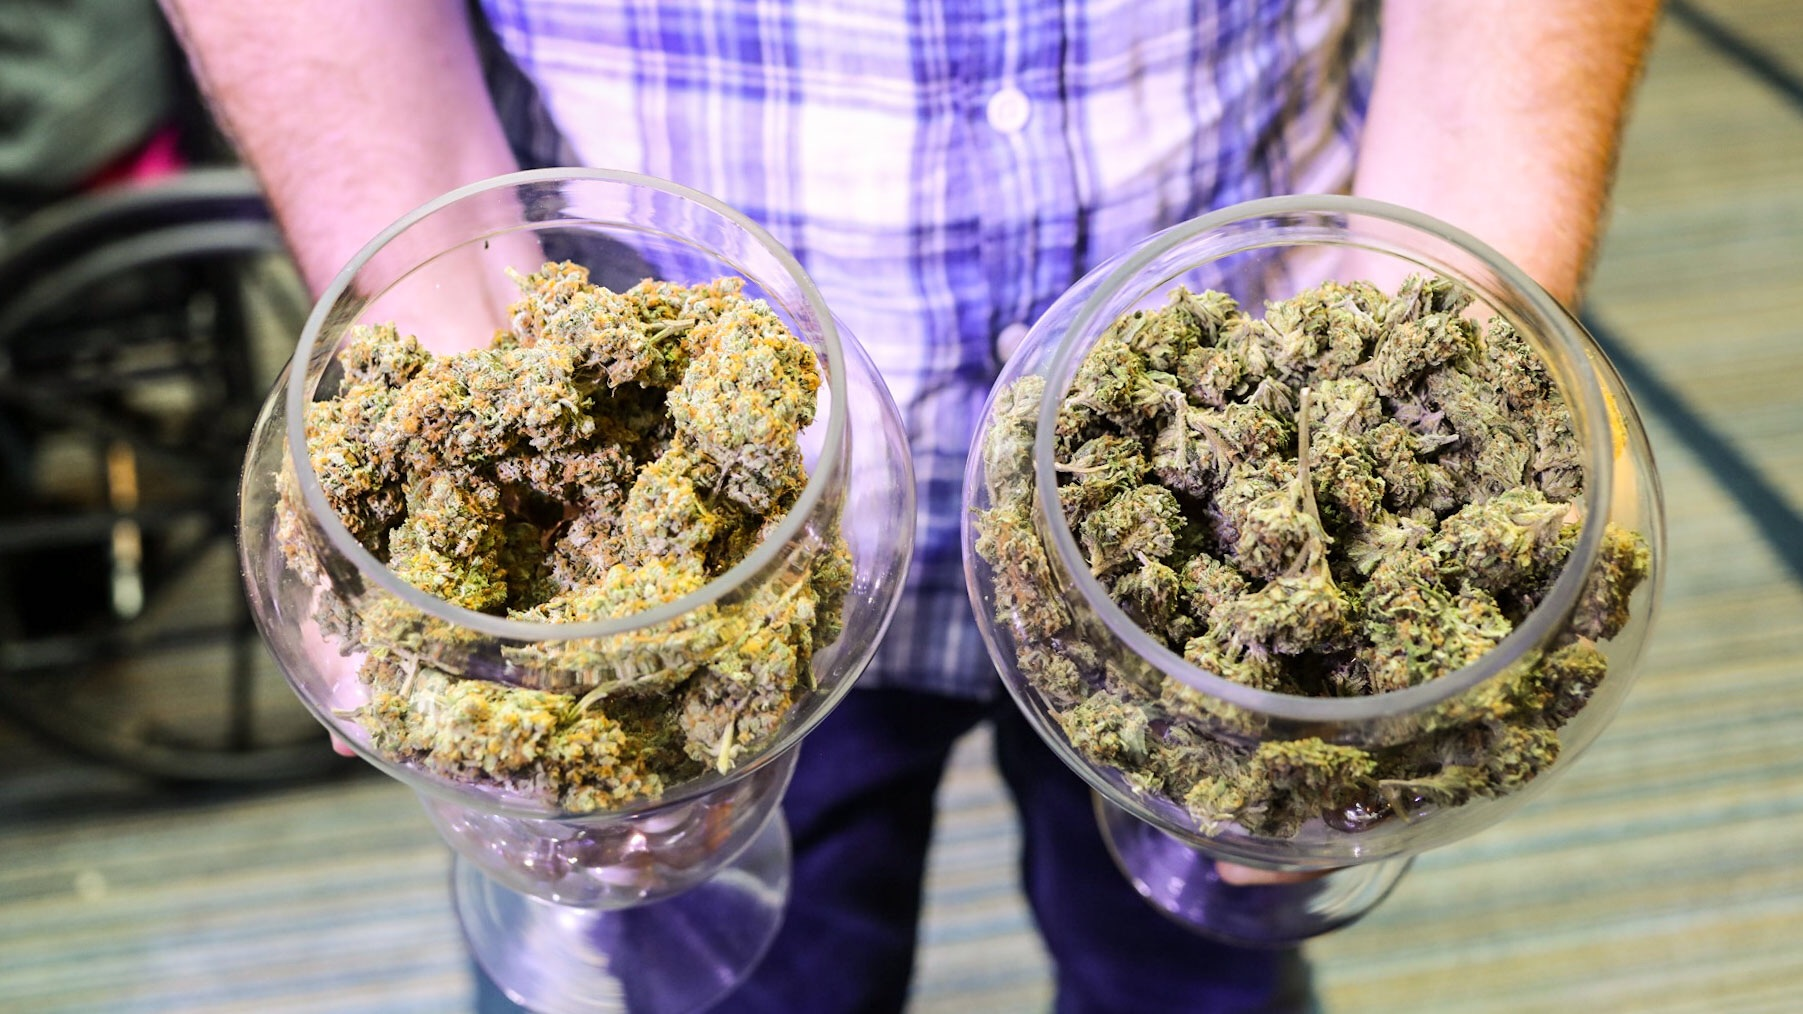 The New West Summit was about the business side of marijuana. But there was still plenty of weed to be found.